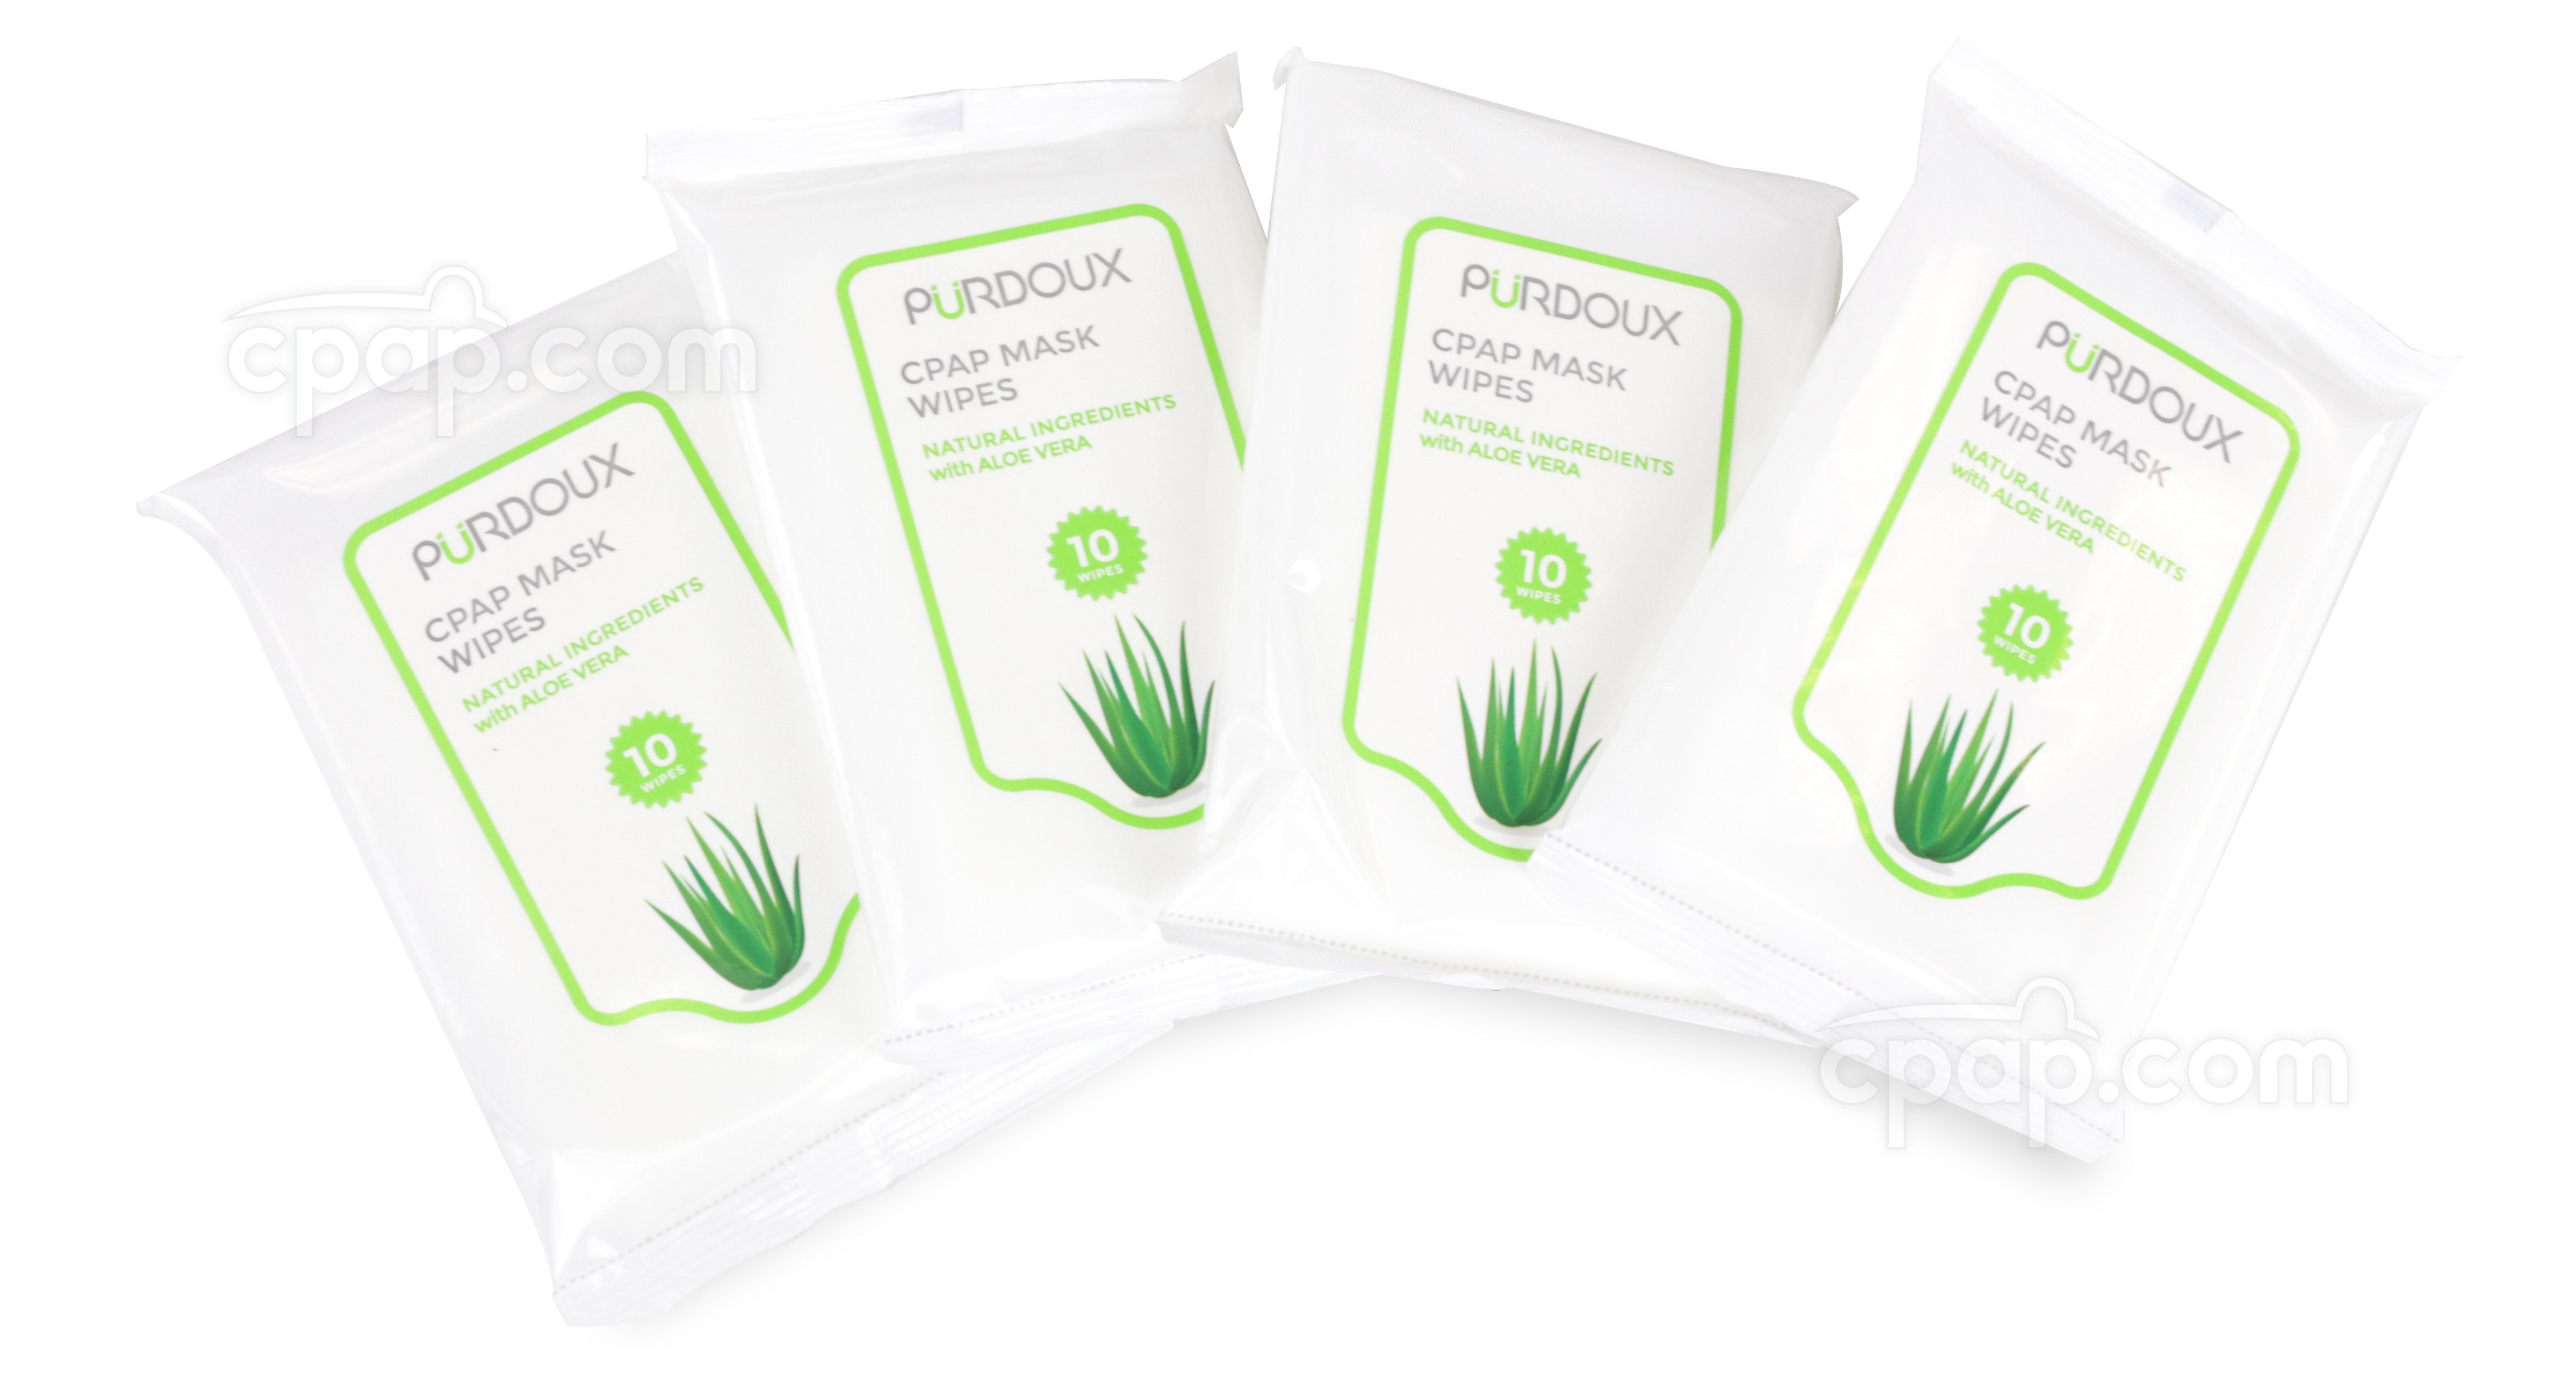 Purdoux Travel Mask Wipes with Aloe